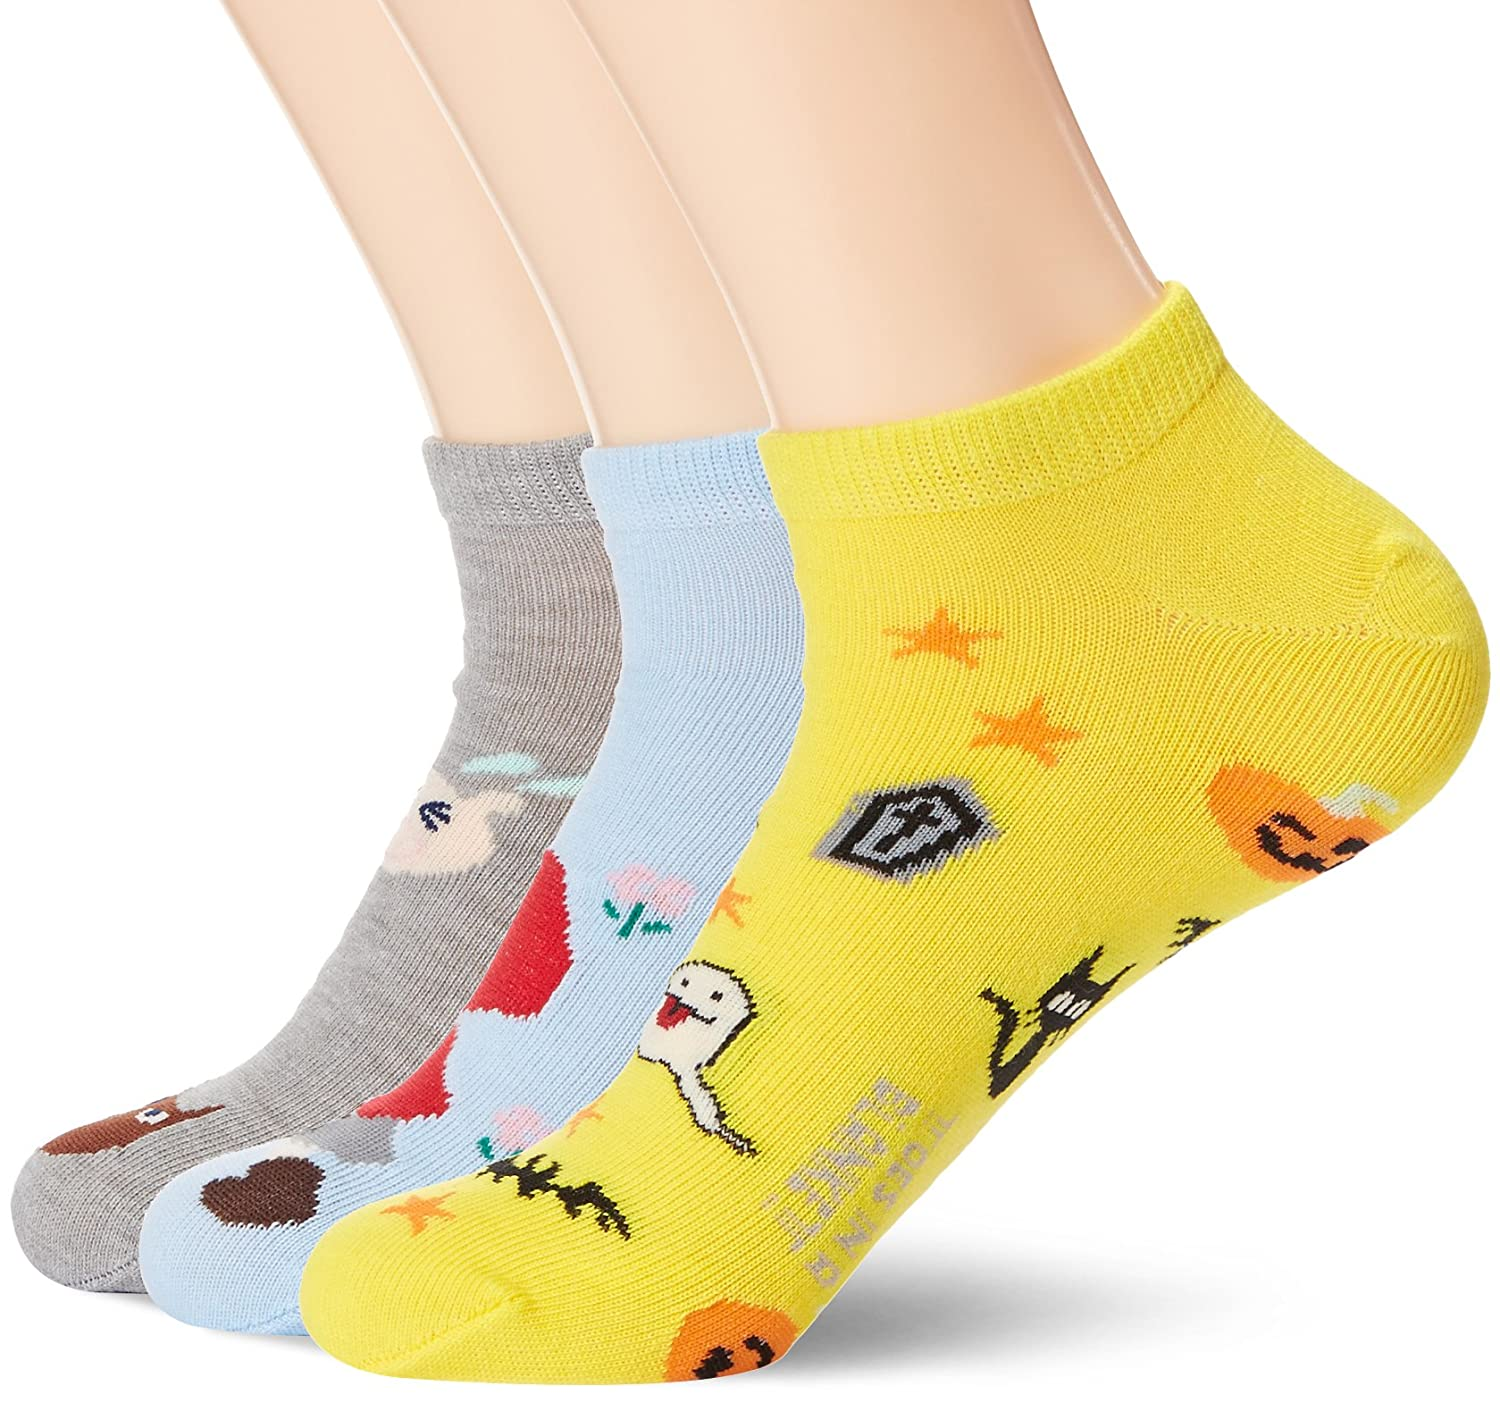 Amazon.com: Toes in A Blanket Womens moisture-free colorful pattened ankle socks with butterfly pattern 3-pair pack: Clothing